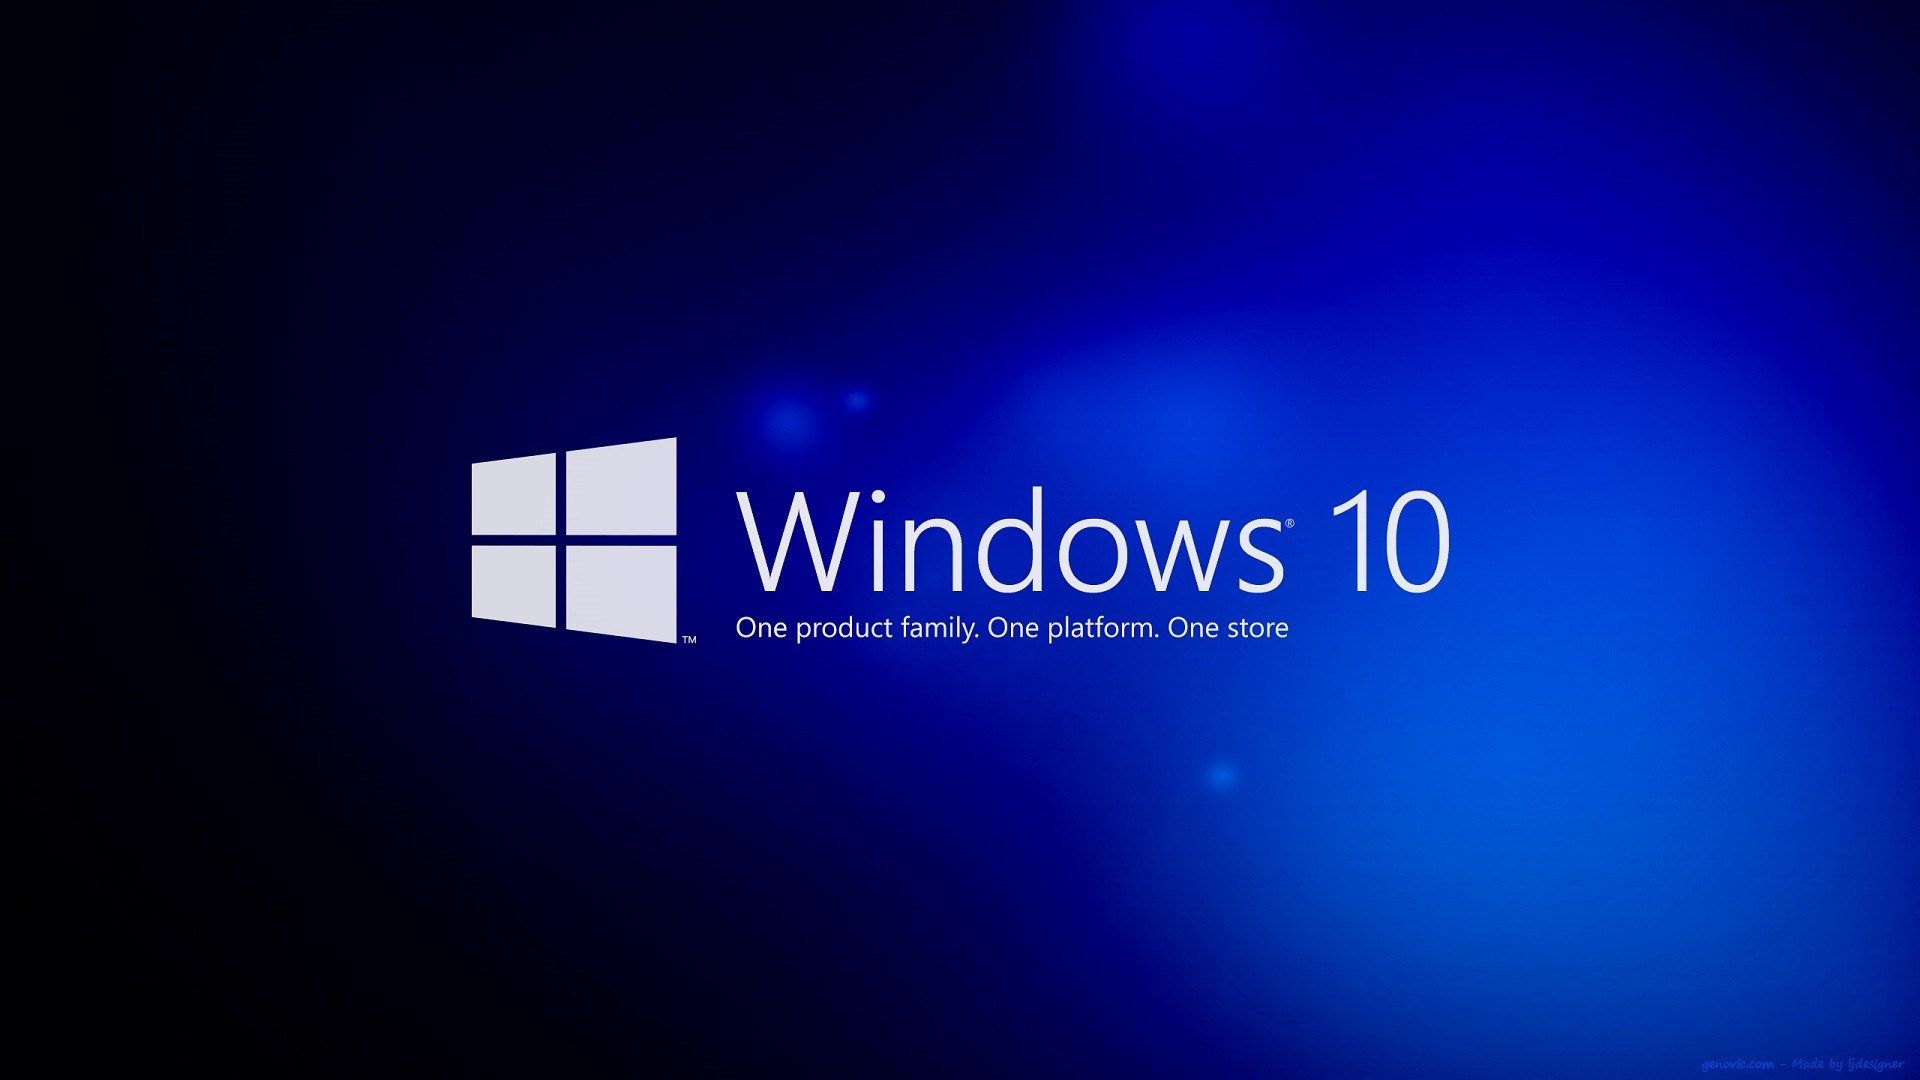 Windows 10 Wallpapers Hd The Cool Art Windows 10 Microsoft Windows 10 Download Windows 10